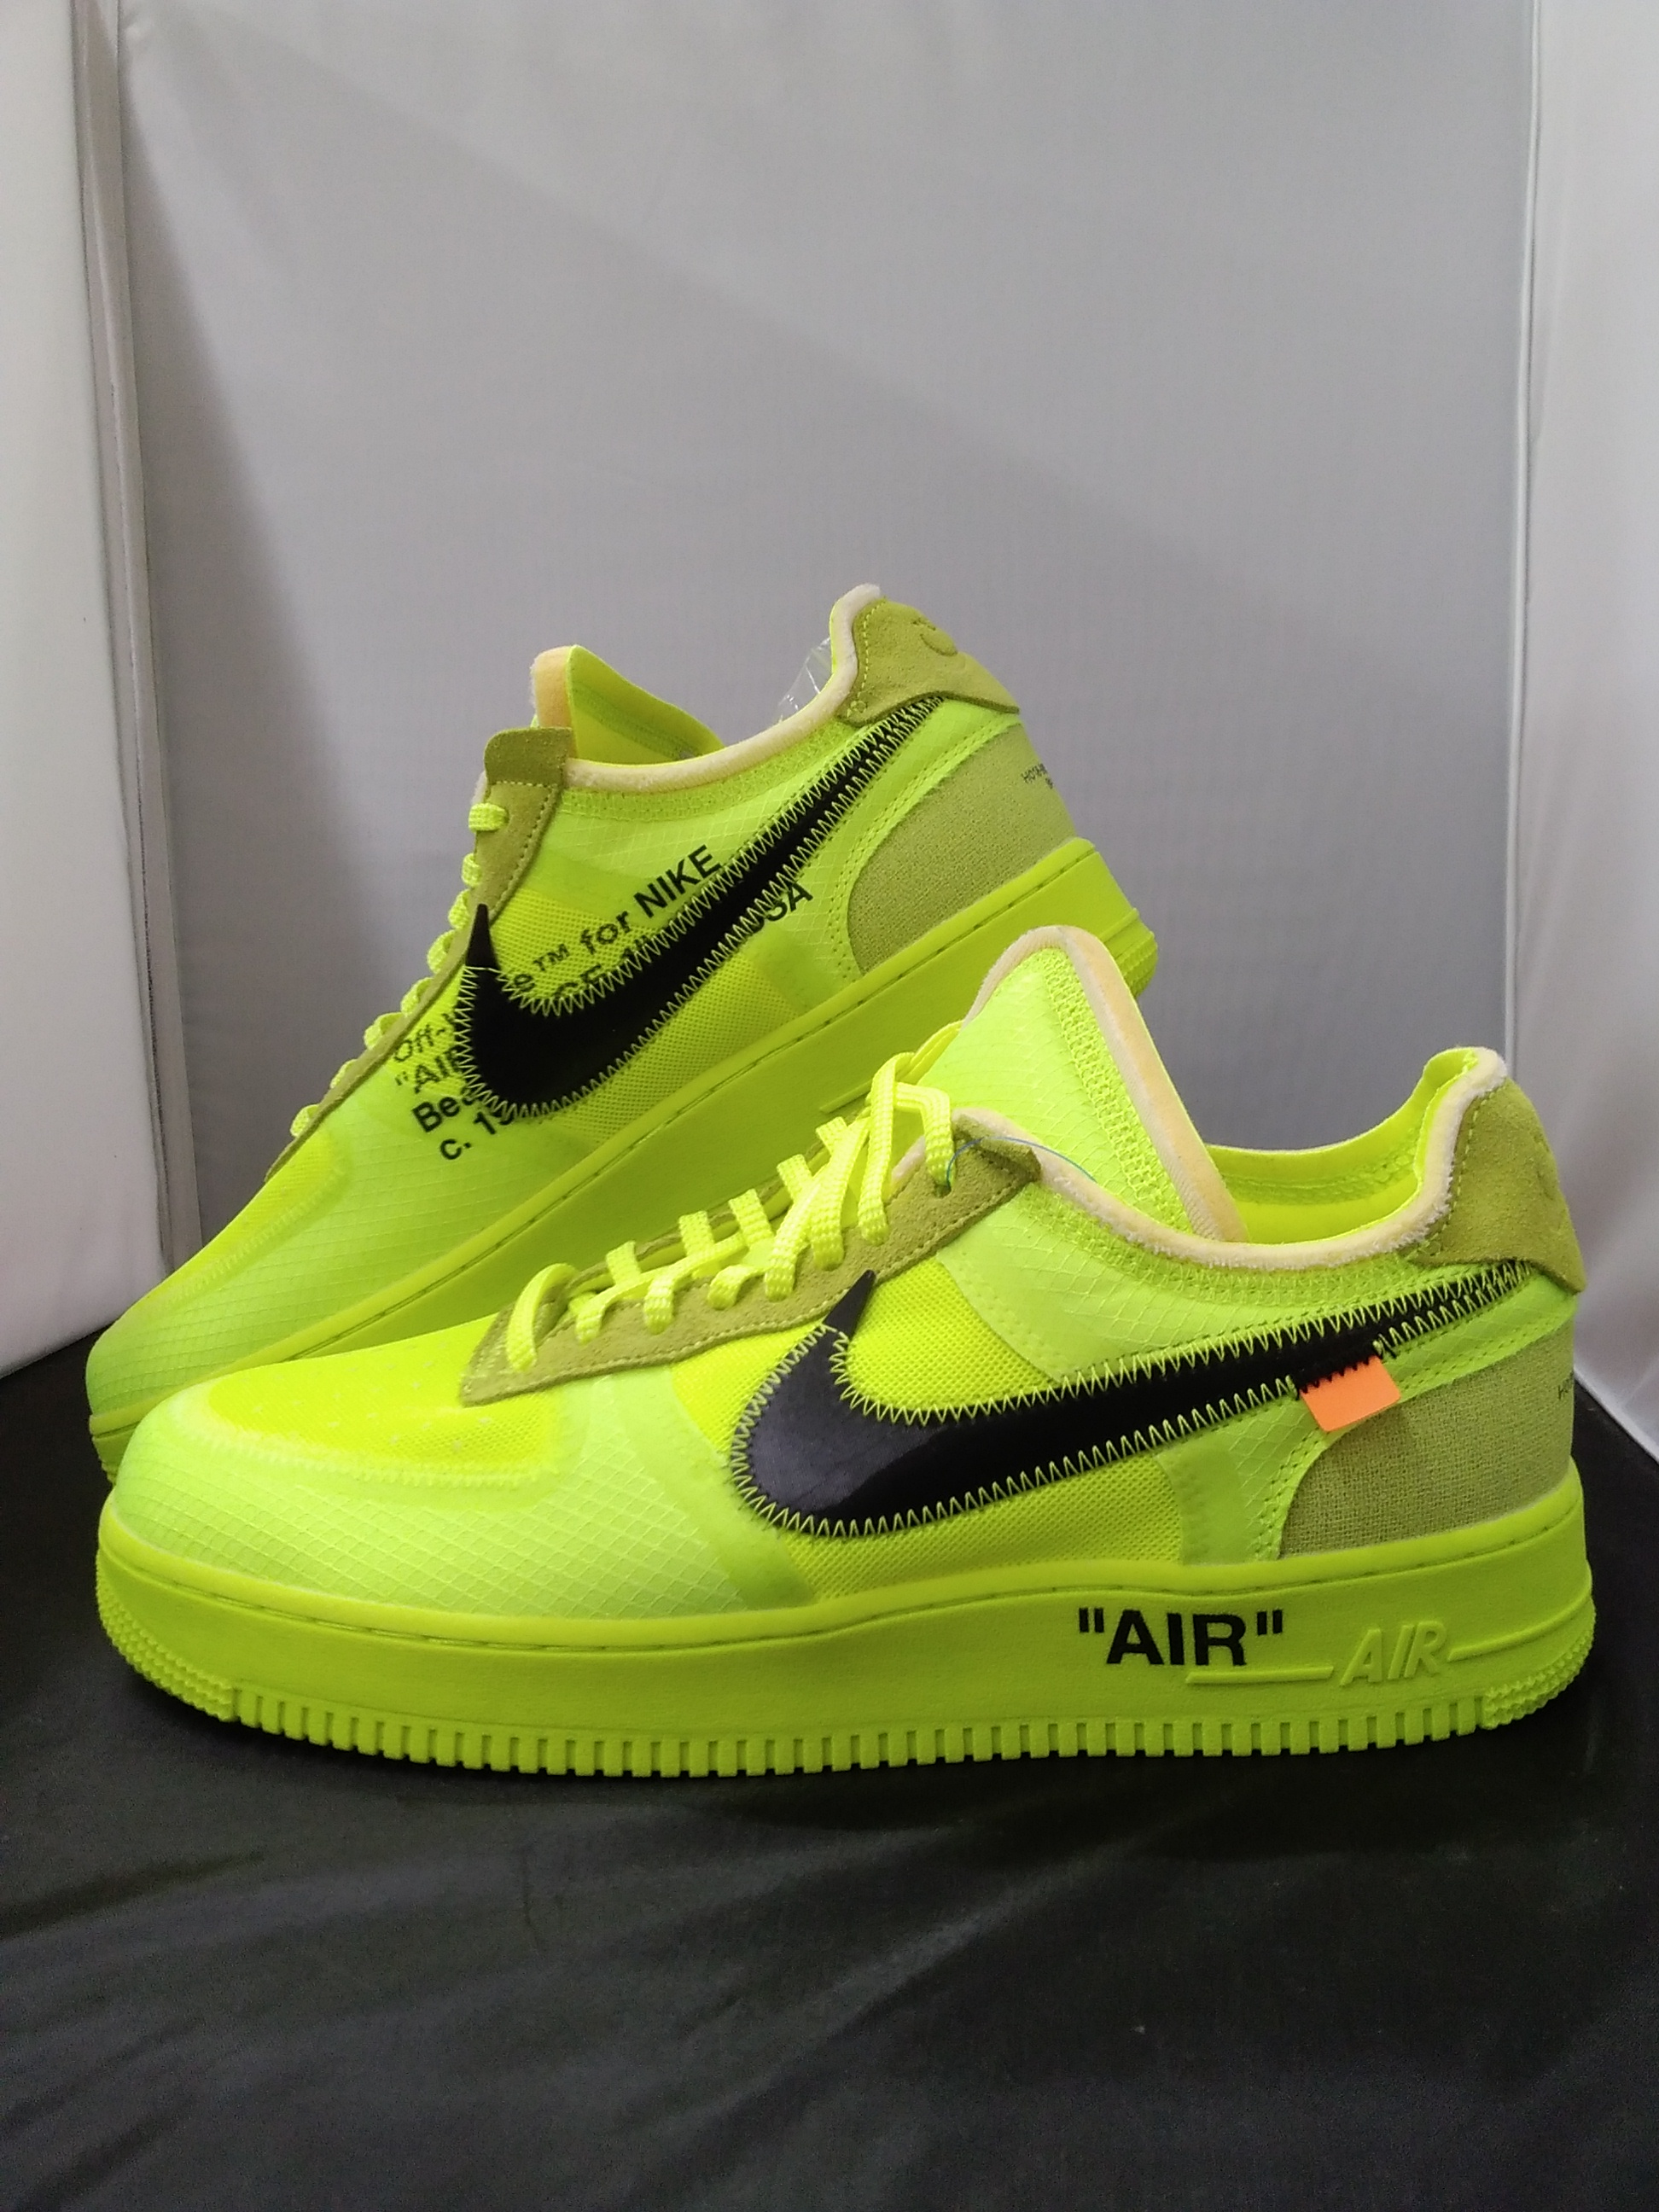 THE 10:AIR FORCE 1 LOW|NIKE